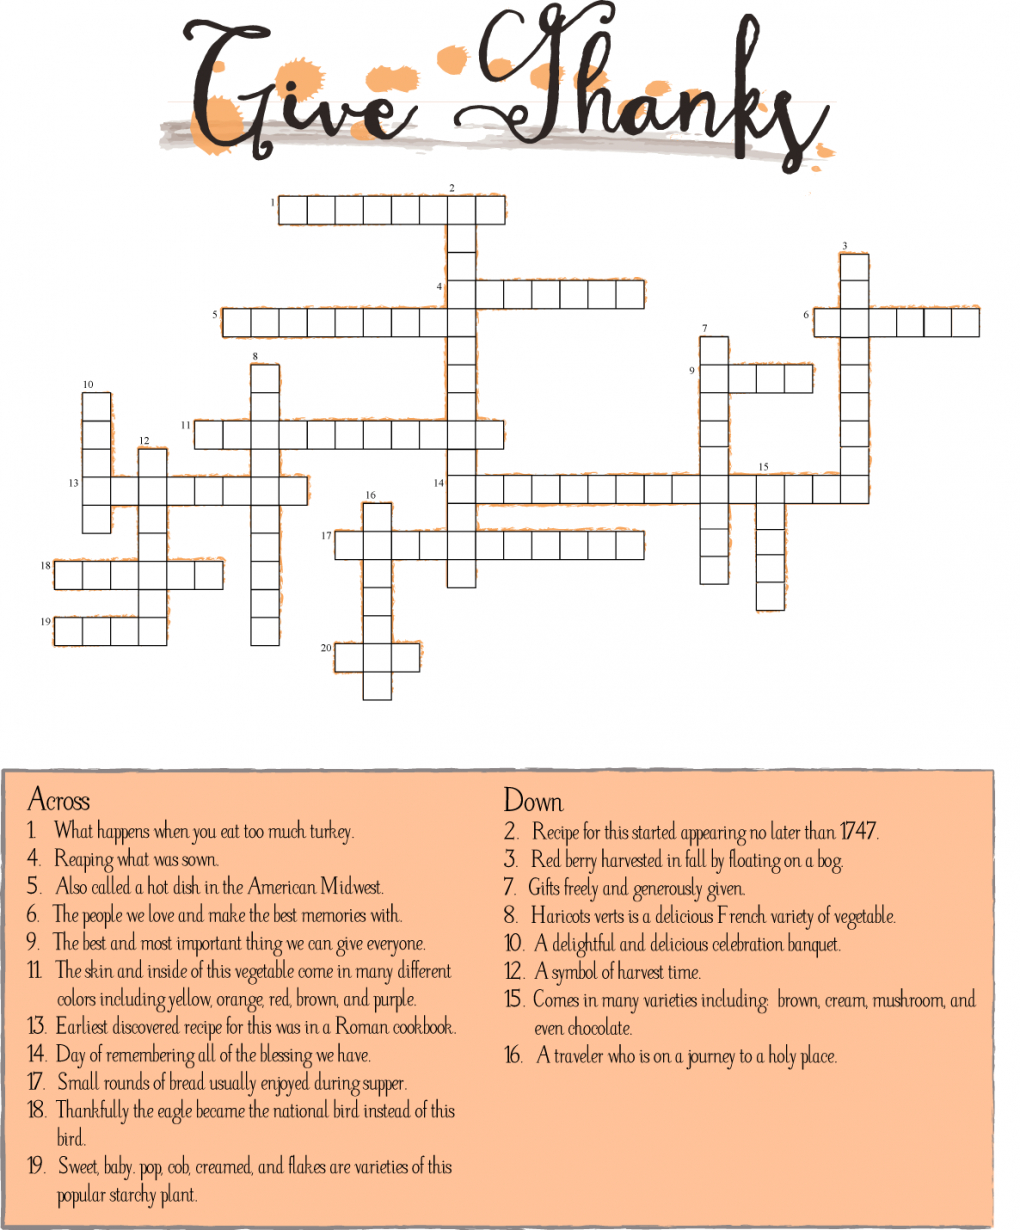 10 Superfun Thanksgiving Crossword Puzzles | Kittybabylove - Printable Crossword Puzzles For Thanksgiving